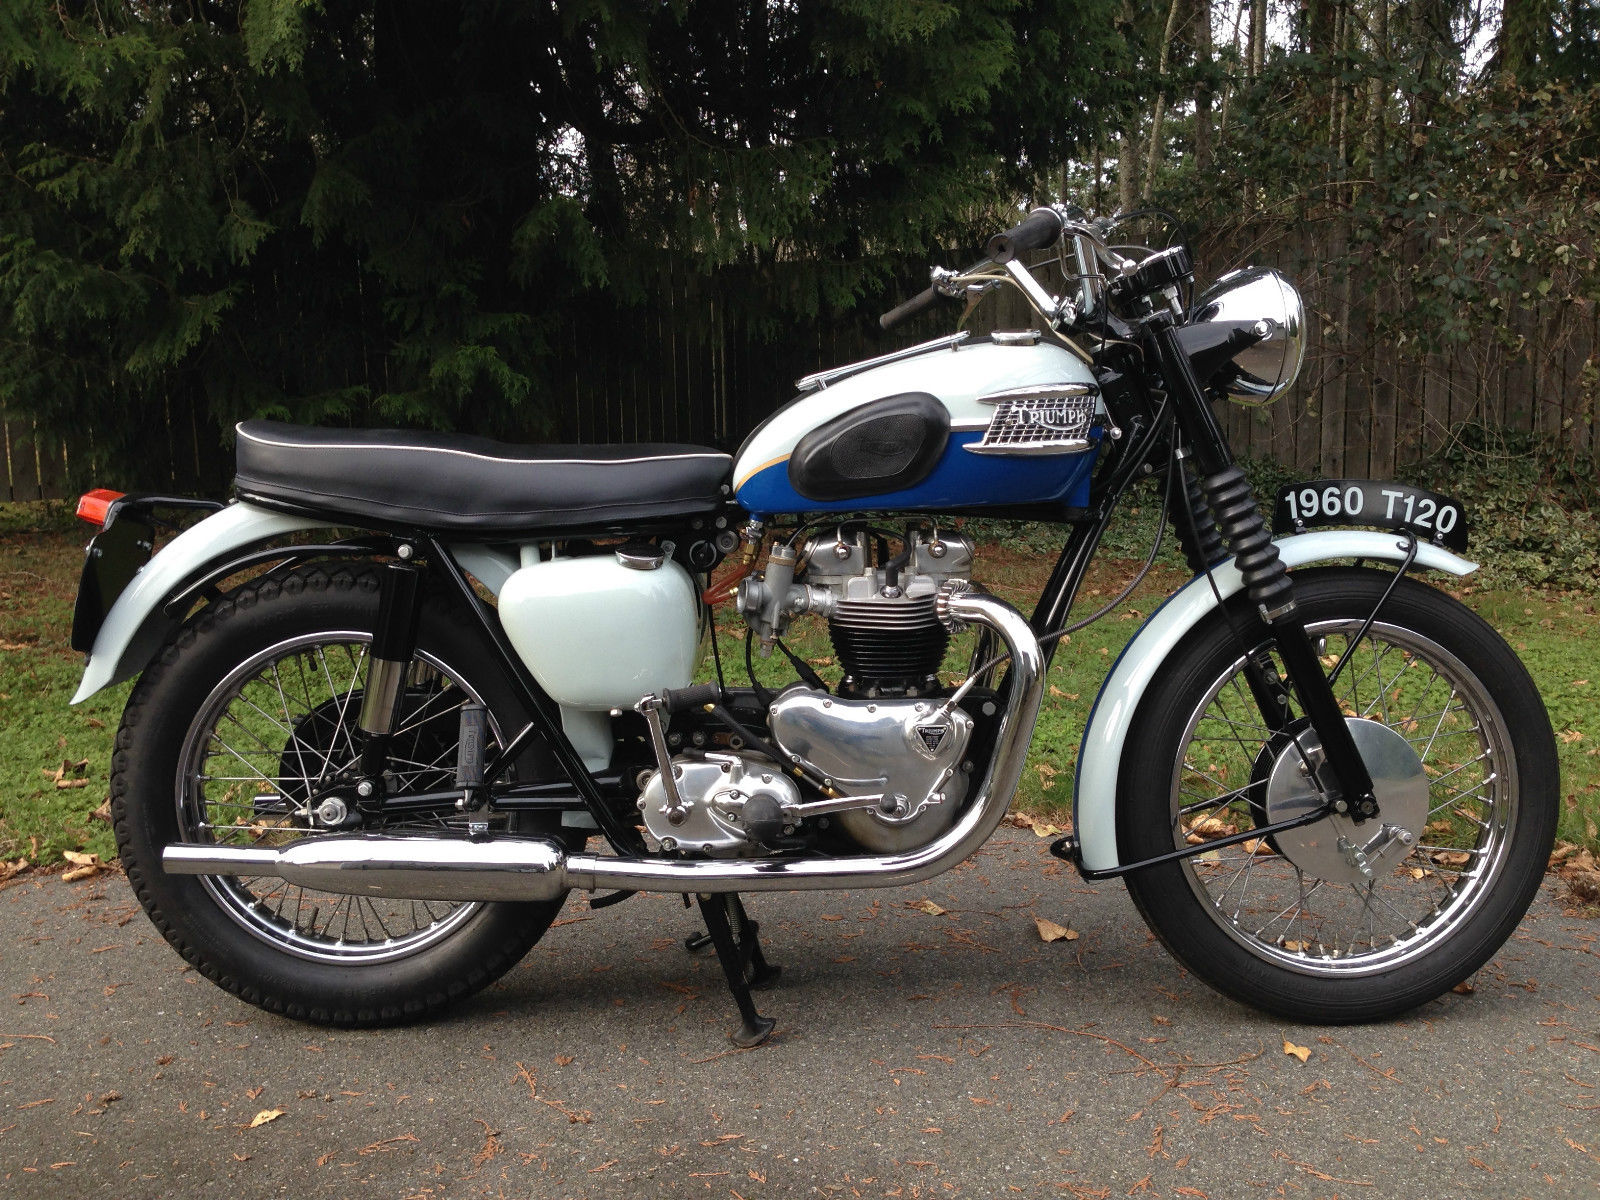 Restored Triumph Bonneville T120 1960 Photographs At